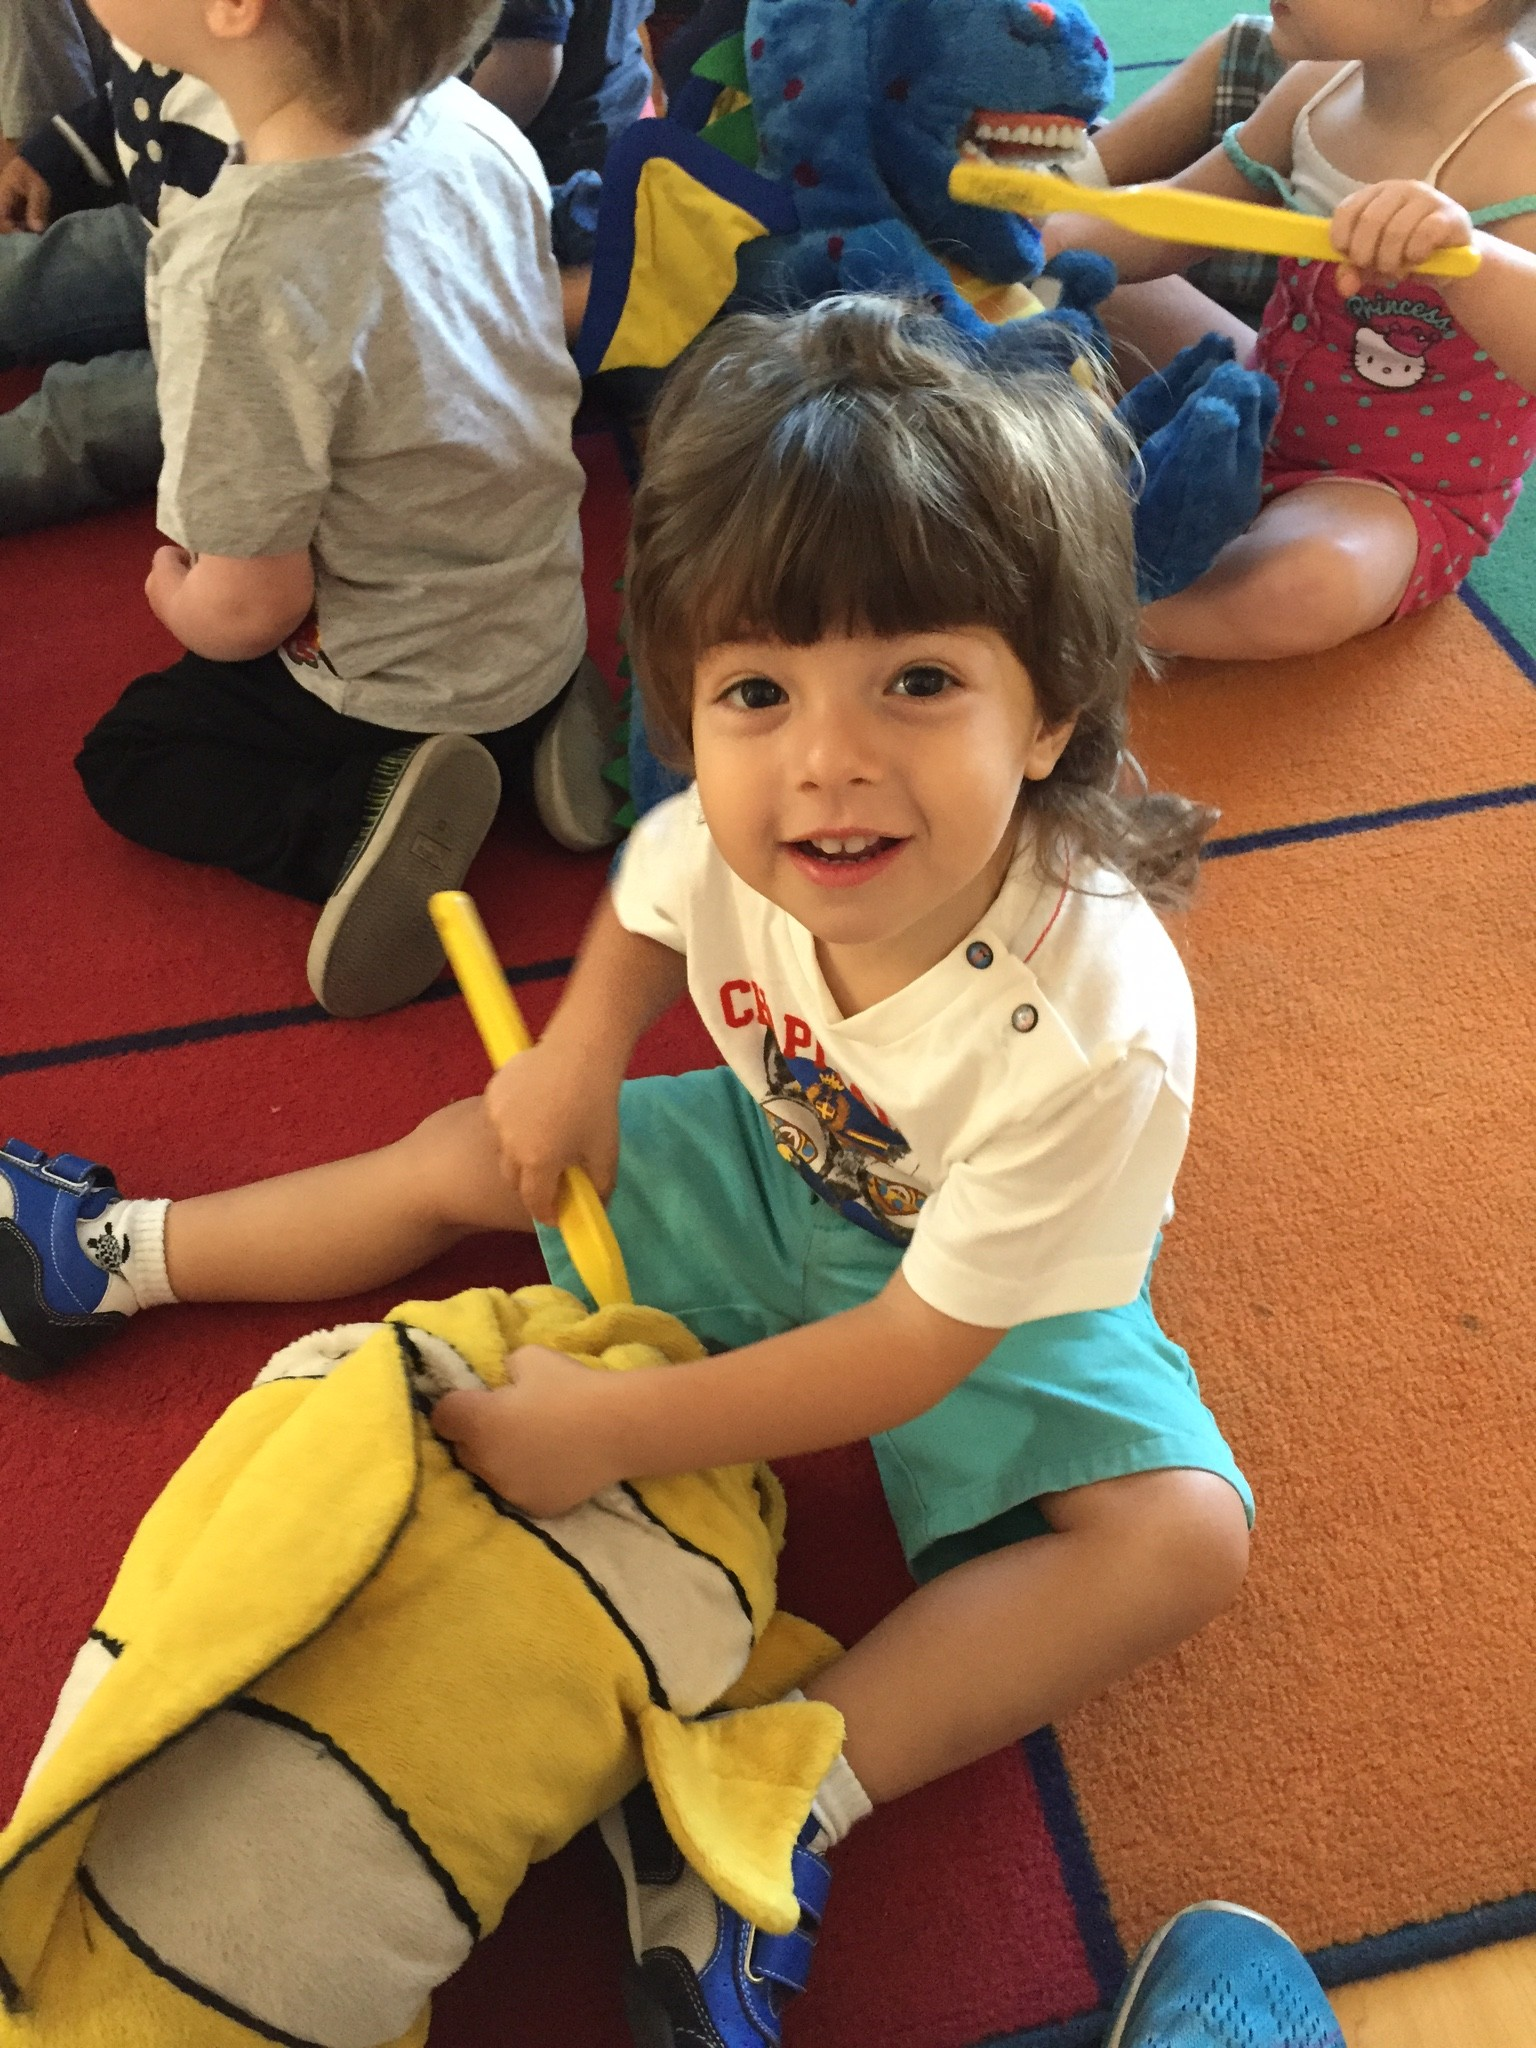 Preschool activity - Milan